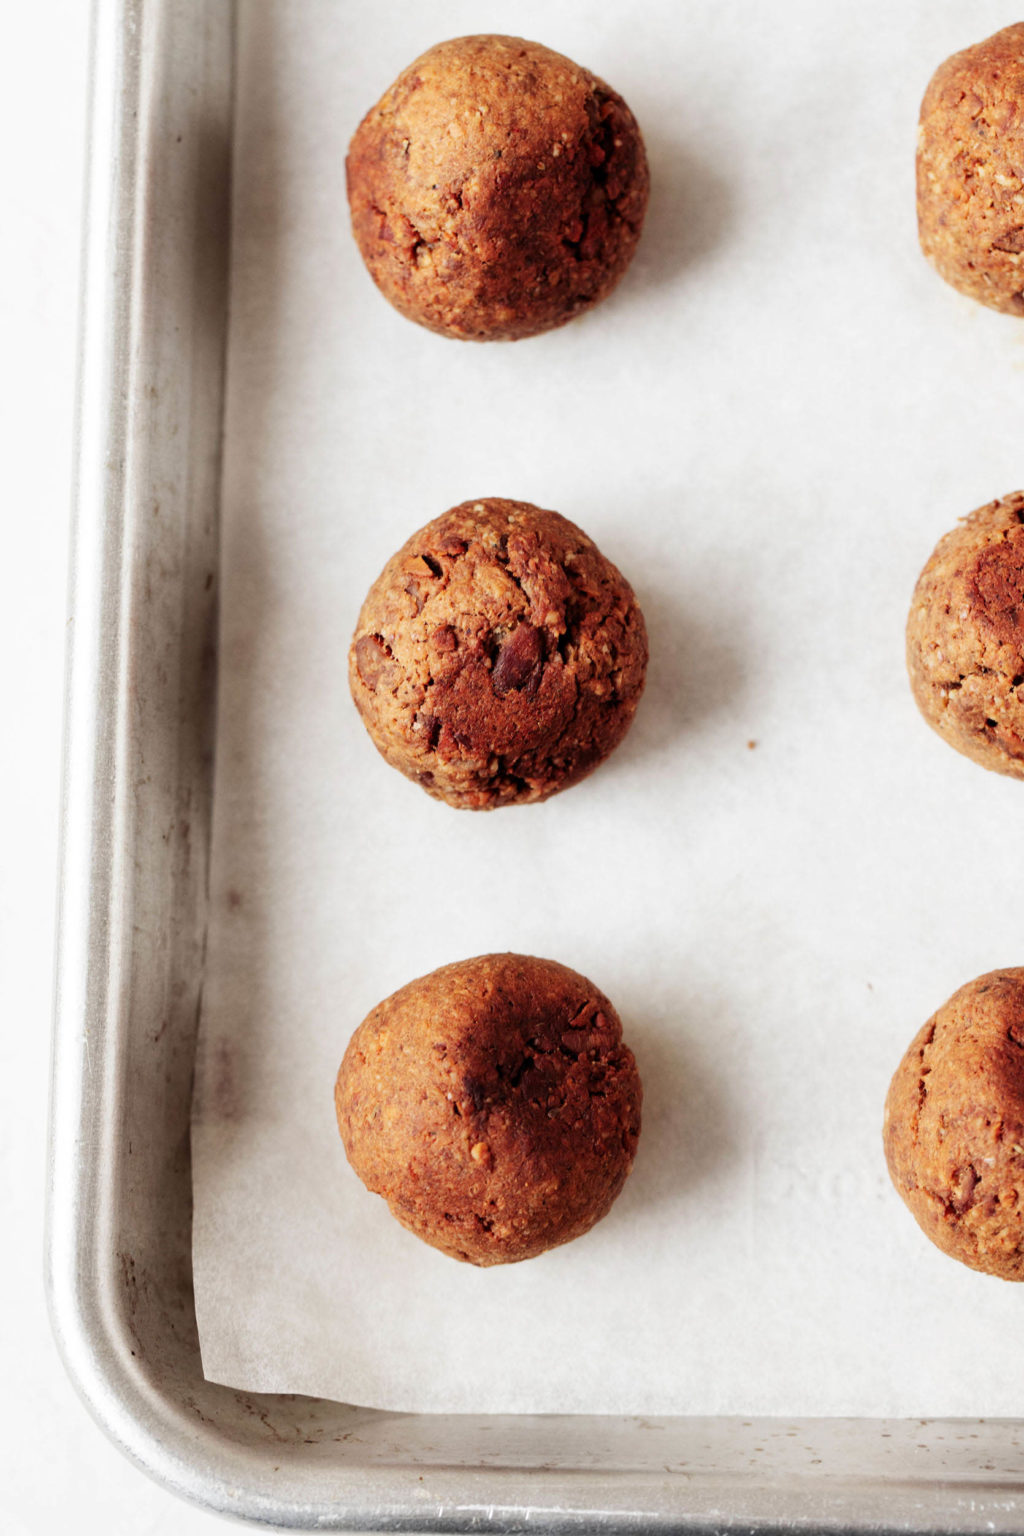 A silver rimmed baking sheet is covered with a sheet of parchment and freshly baked tempeh meatballs.